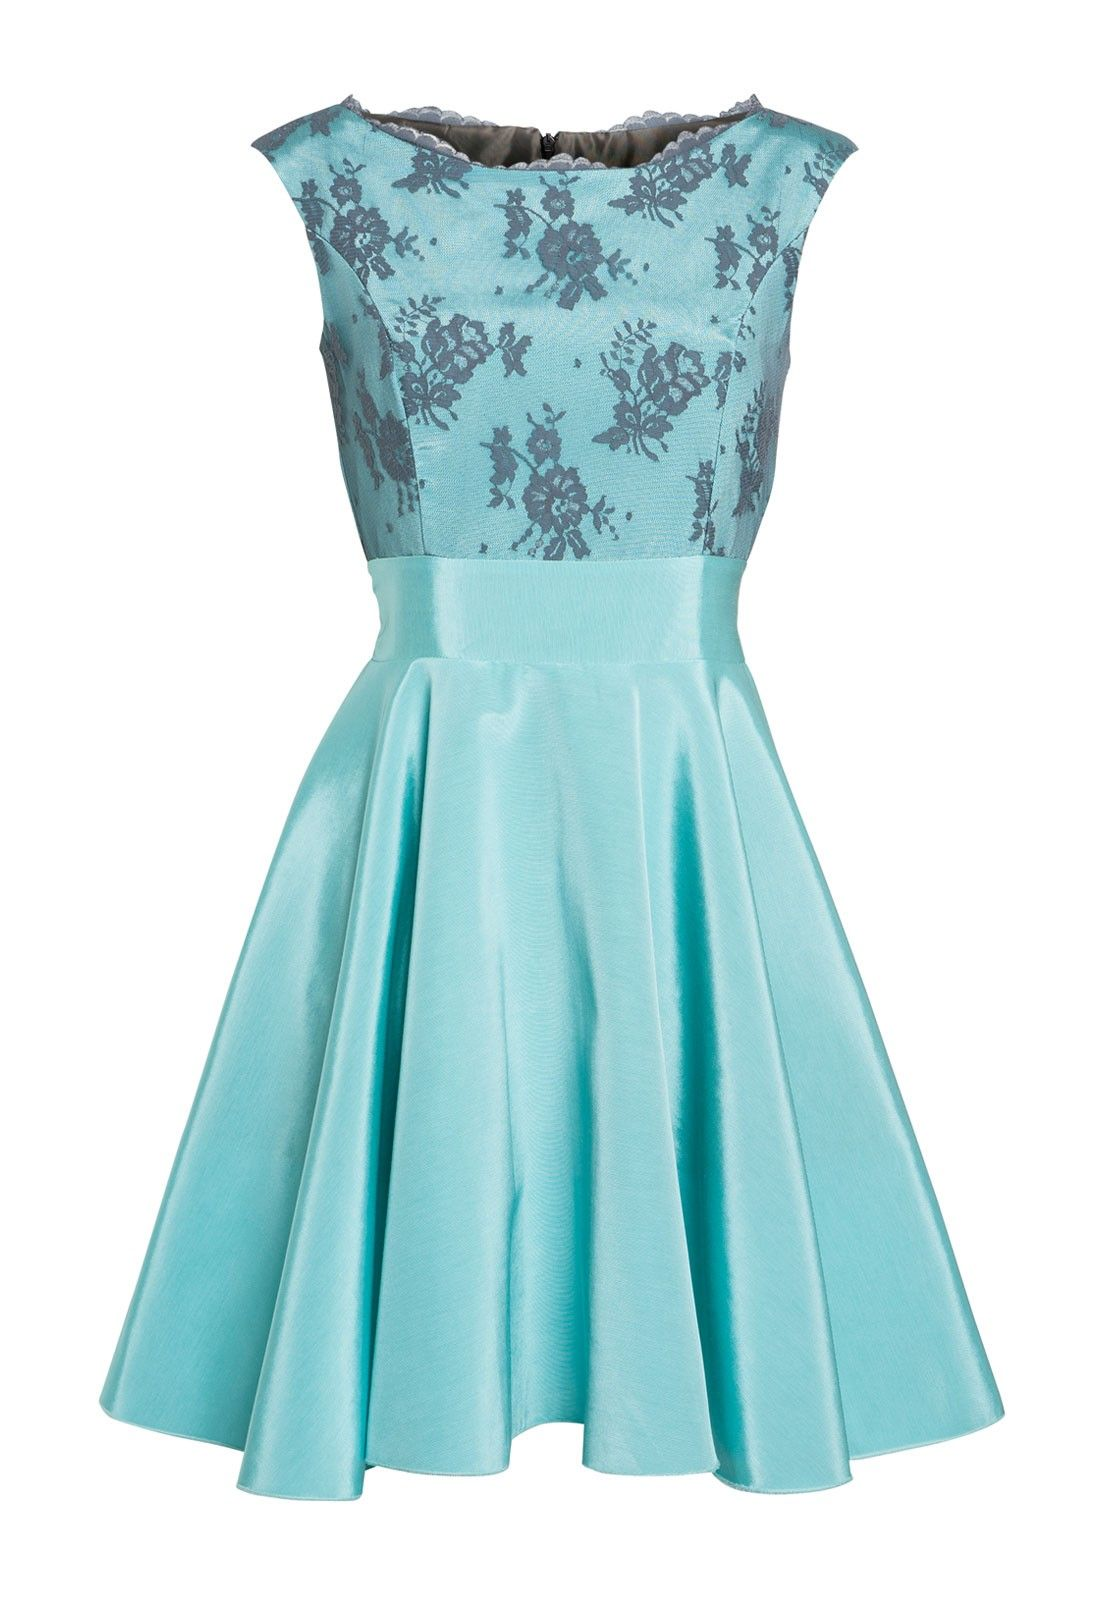 Kate Fearnley Pippa Dress in Duck Egg Blue | Ladies day | Pinterest